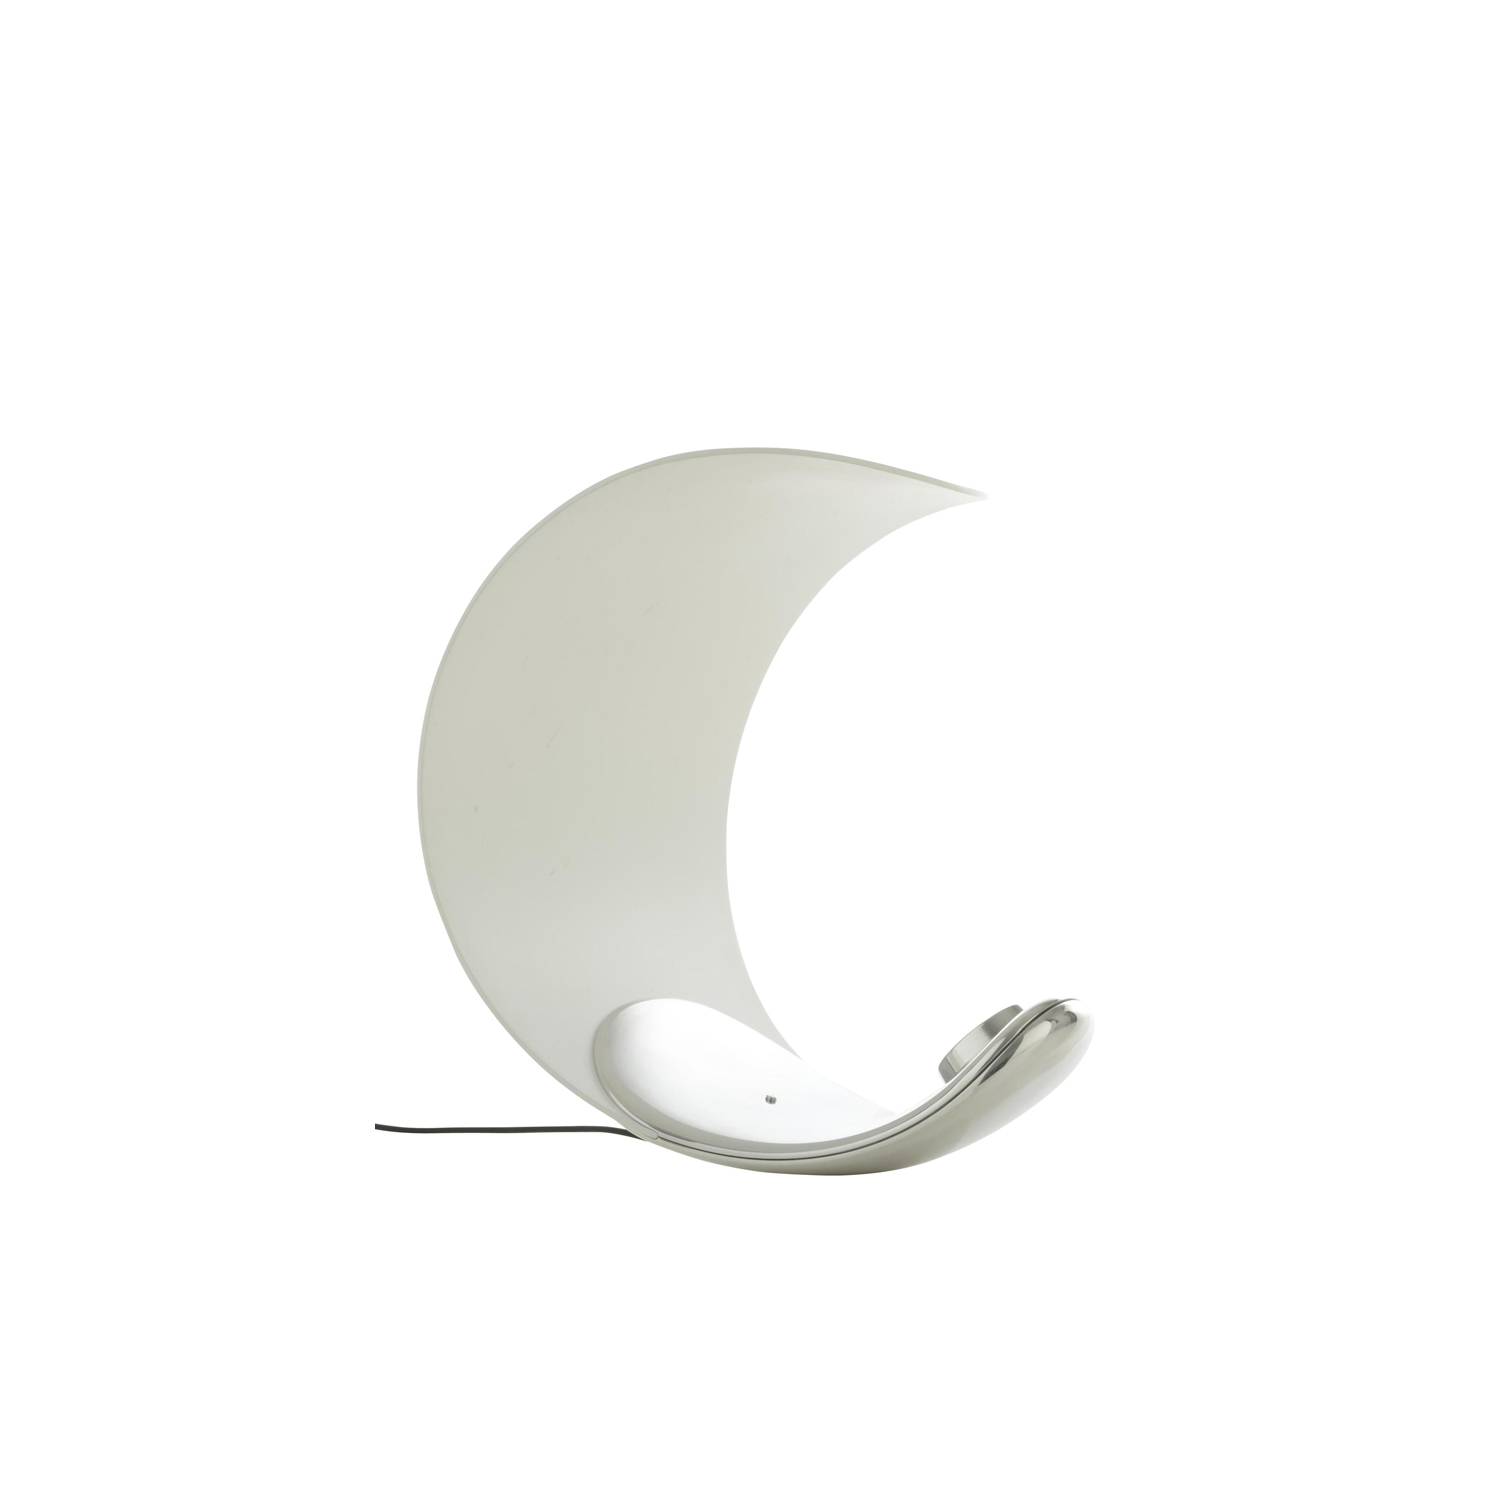 Curl Table Lamp -   The Curl lamp is a device with well-balanced proportions and a natural sculptural presence. The typology of reference is the table lamp, a fixture to supply diffused light, shielding glare to create a restful atmosphere. The form of the base allows Curl to assume different positions; a dimmer switch is positioned at its center. | Matter of Stuff